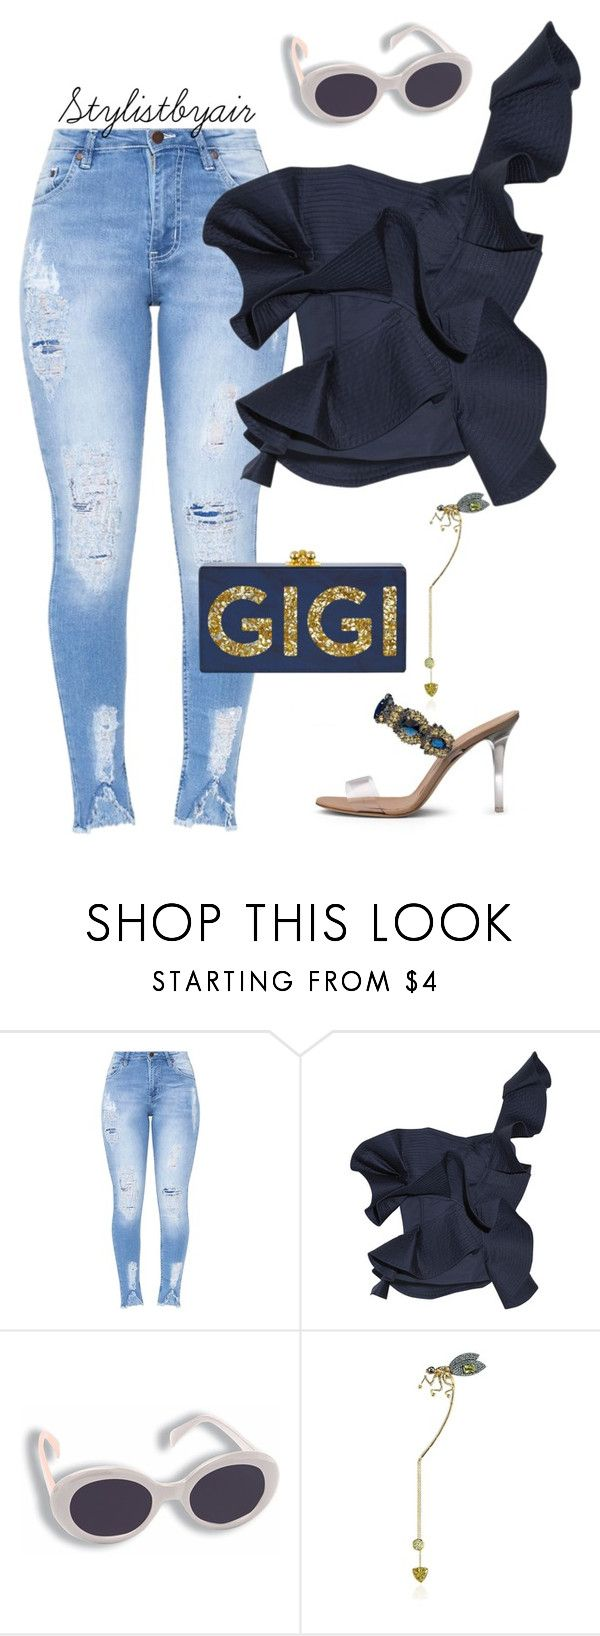 """Untitled #7389"" by stylistbyair ❤ liked on Polyvore featuring Johanna Ortiz, Manolo Blahnik and Daniela Villegas"